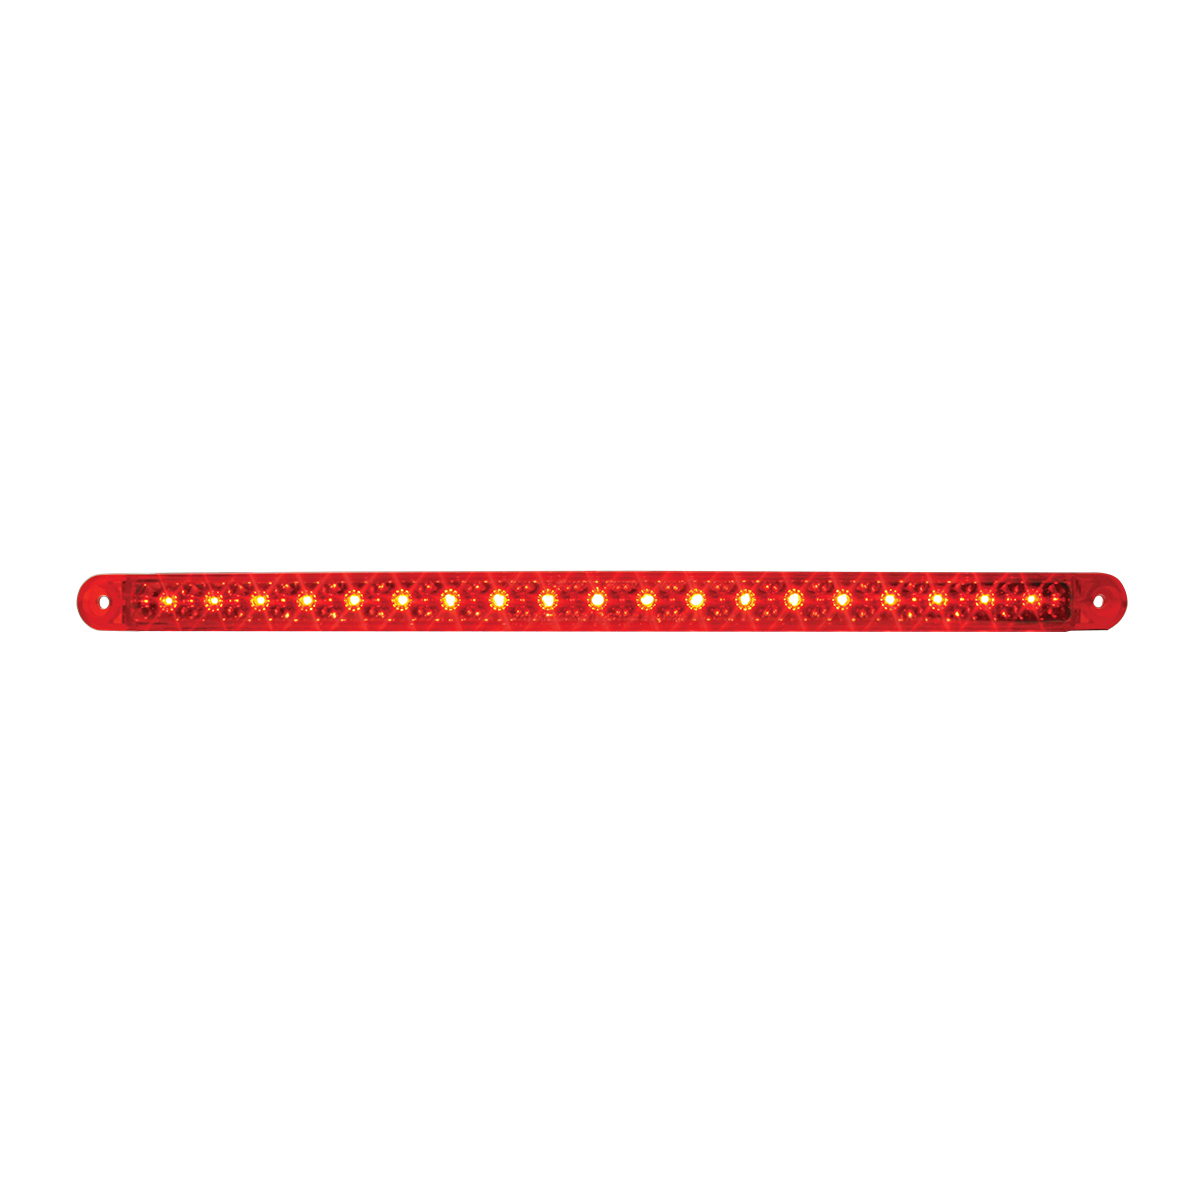 "76385 12"" Flush Mount Light Bar"